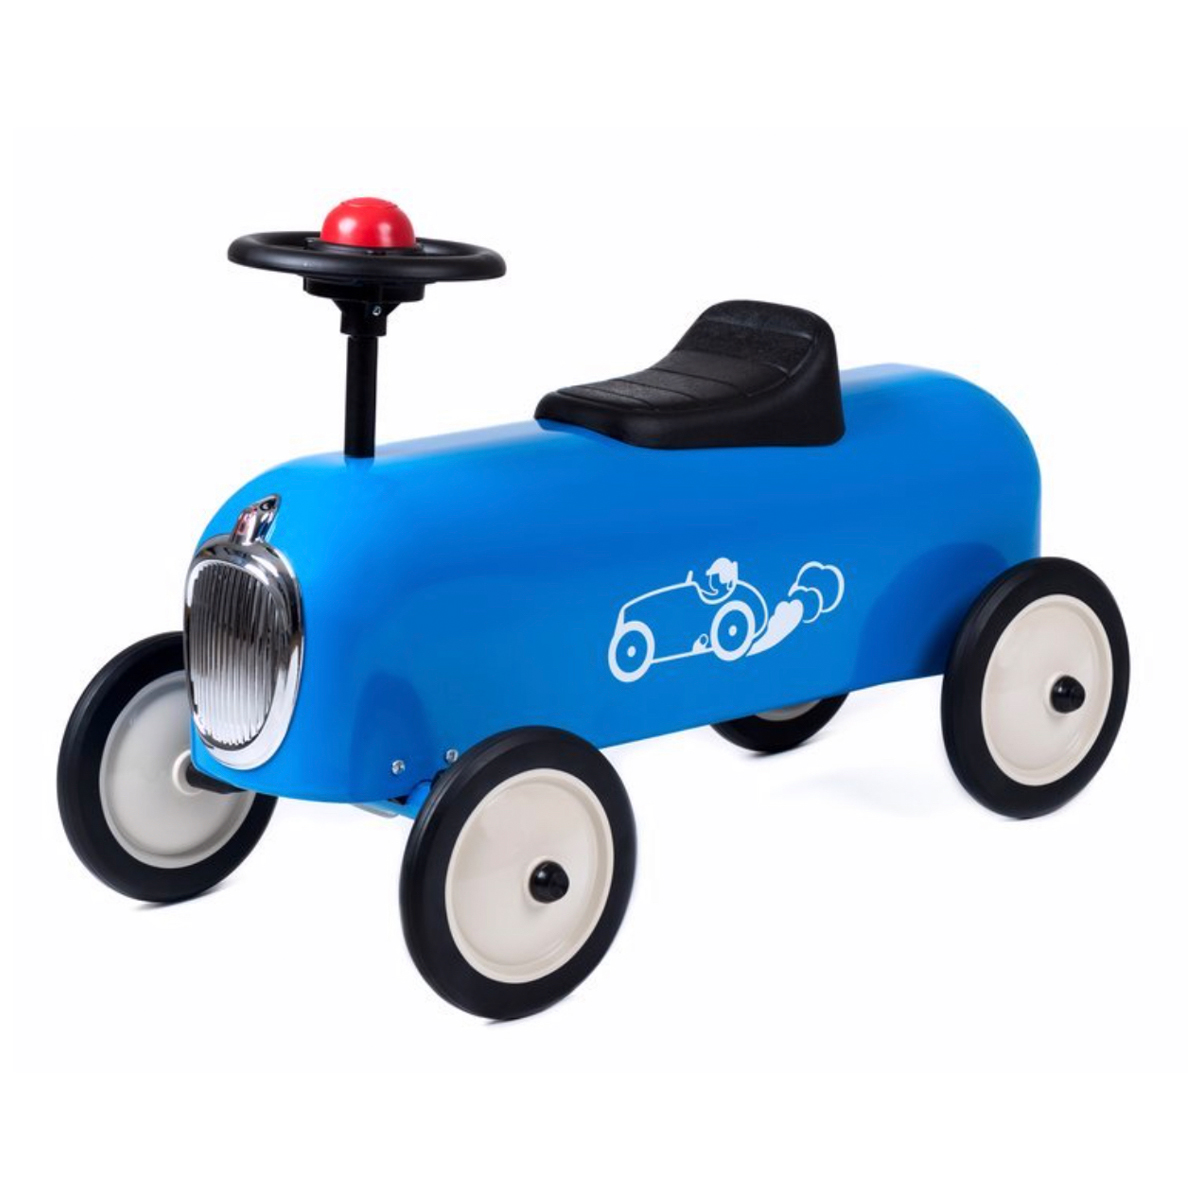 Baghera Racer Ride-On Toy in Blue